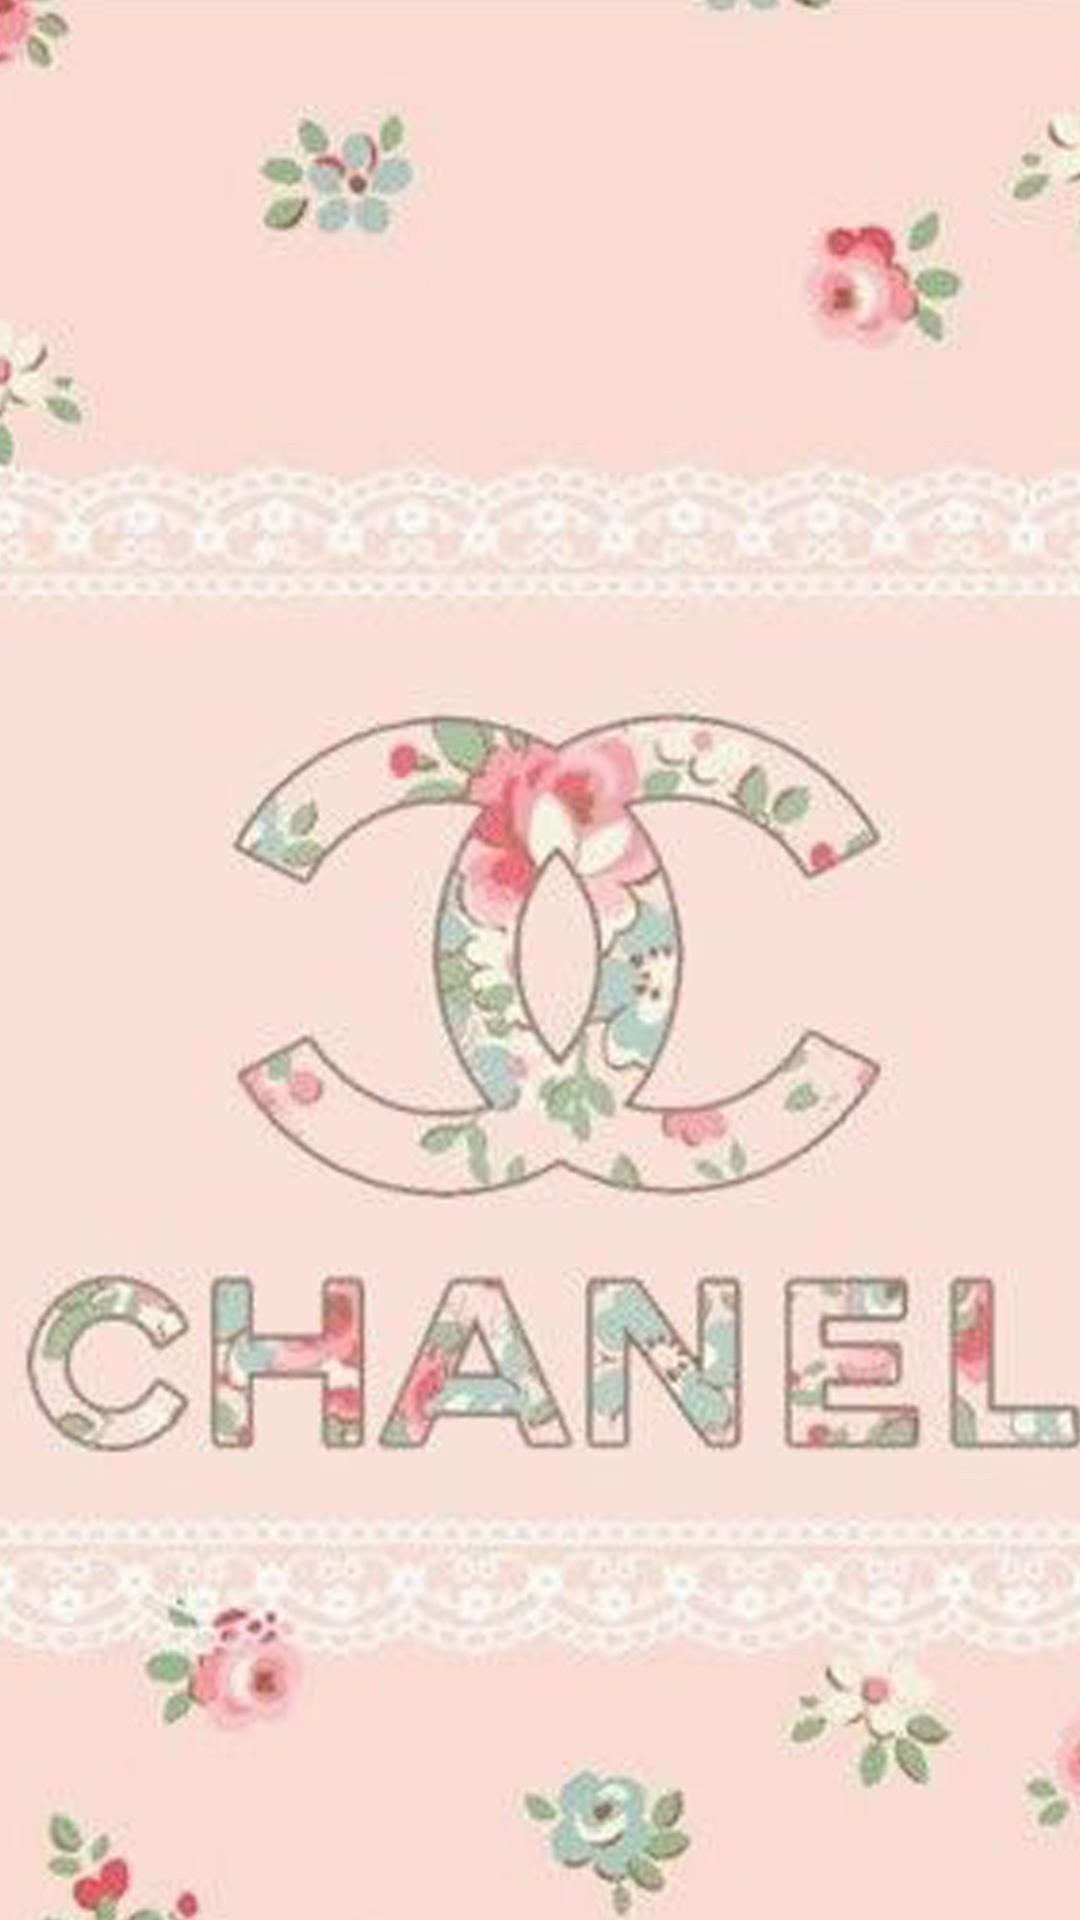 1080x1920 wallpaper.wiki-Chanel-iPhone-Backgrounds-HD-Download-Free-